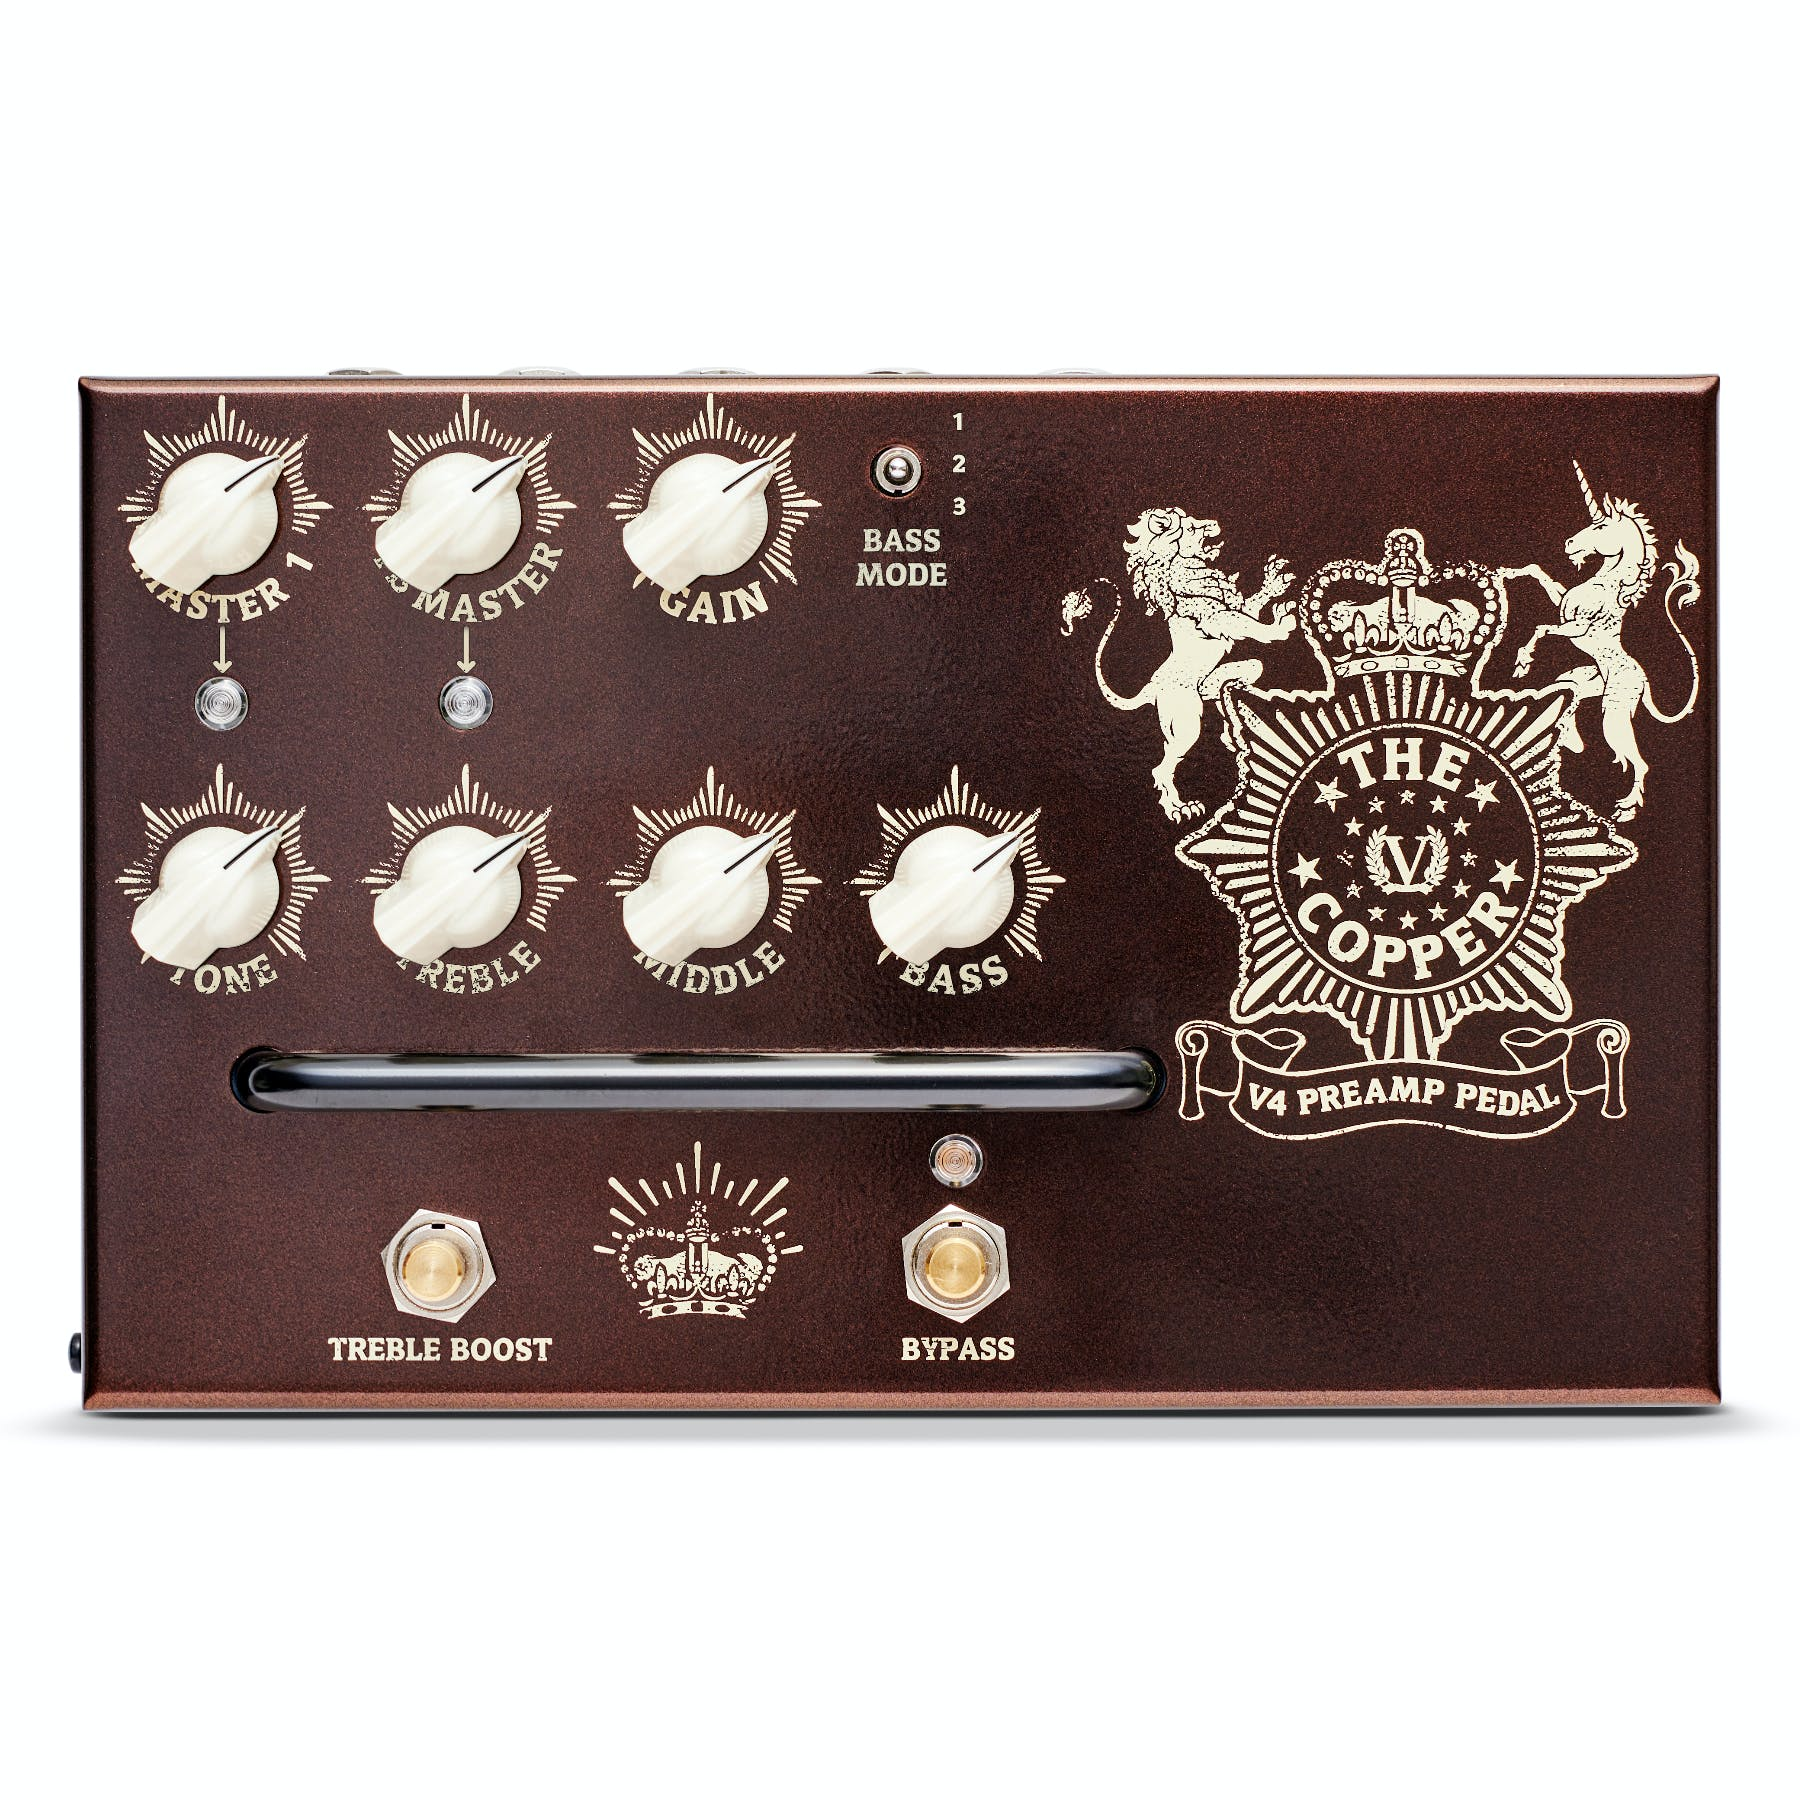 """Victory V4 'The Copper' Preamp Pedalfor{""""value"""":379.00,""""currency"""":""""GBP""""}"""